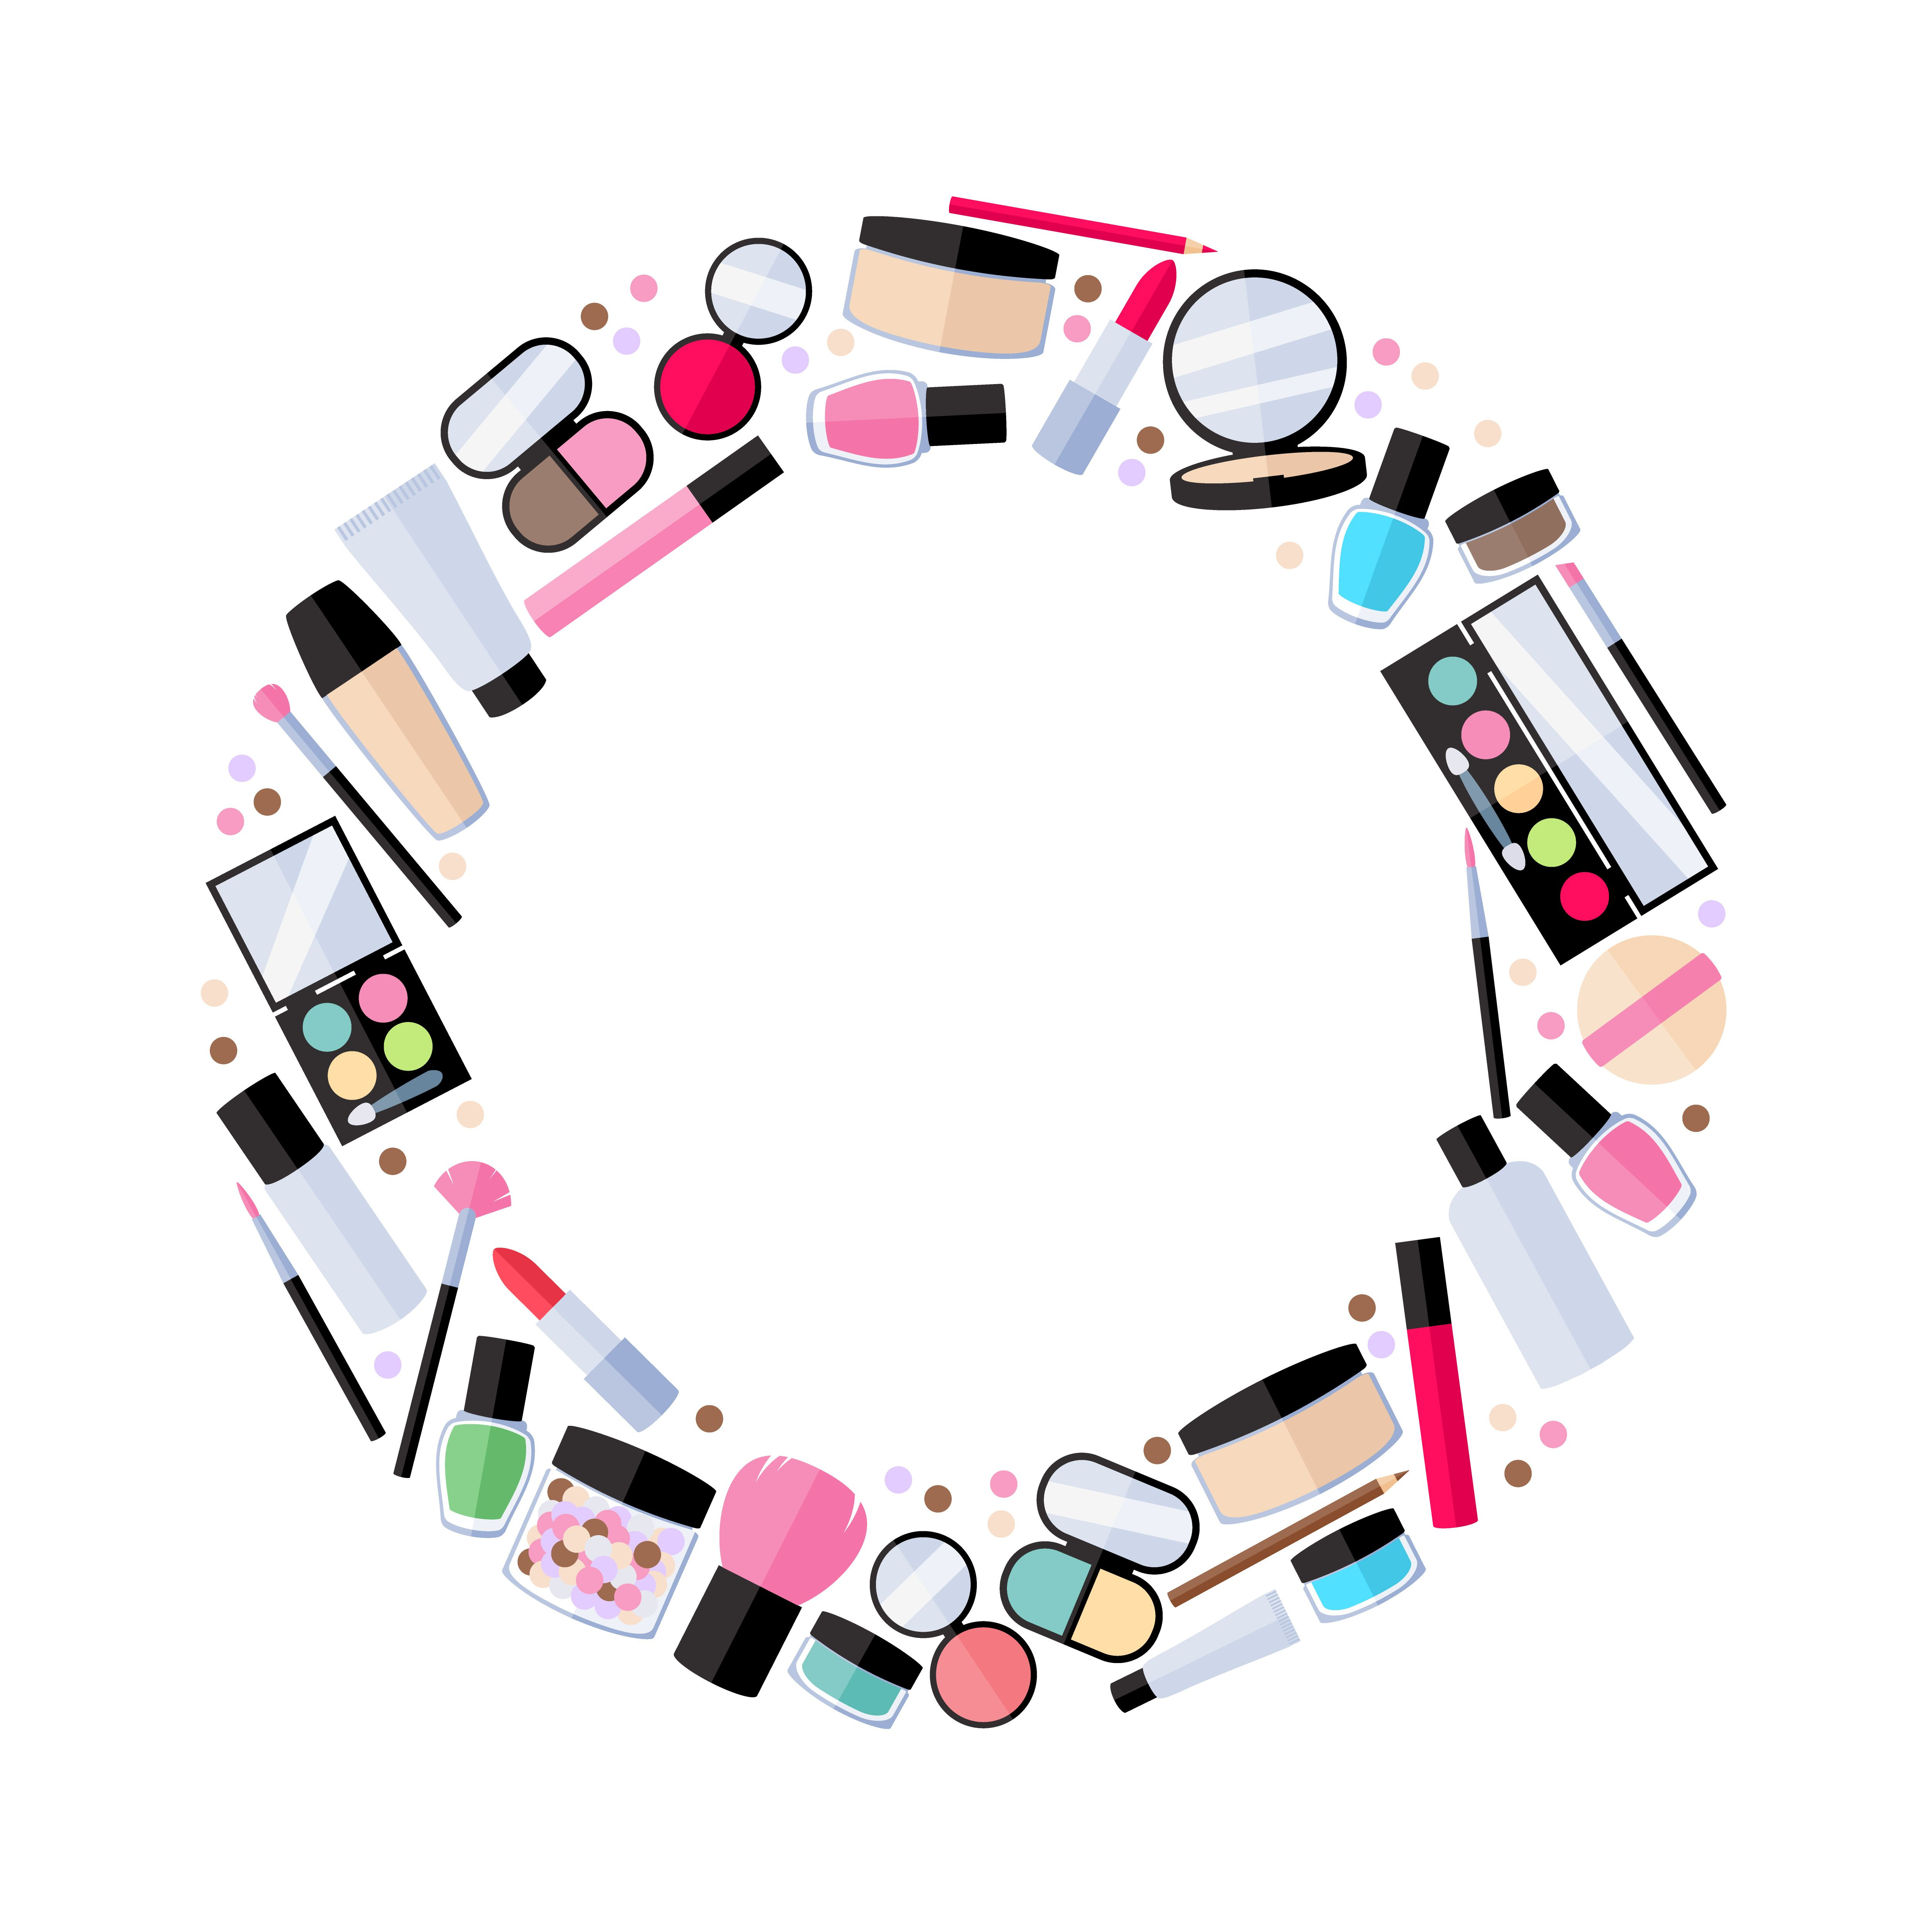 Making Up with Makeup Makeup clipart, Frame clipart